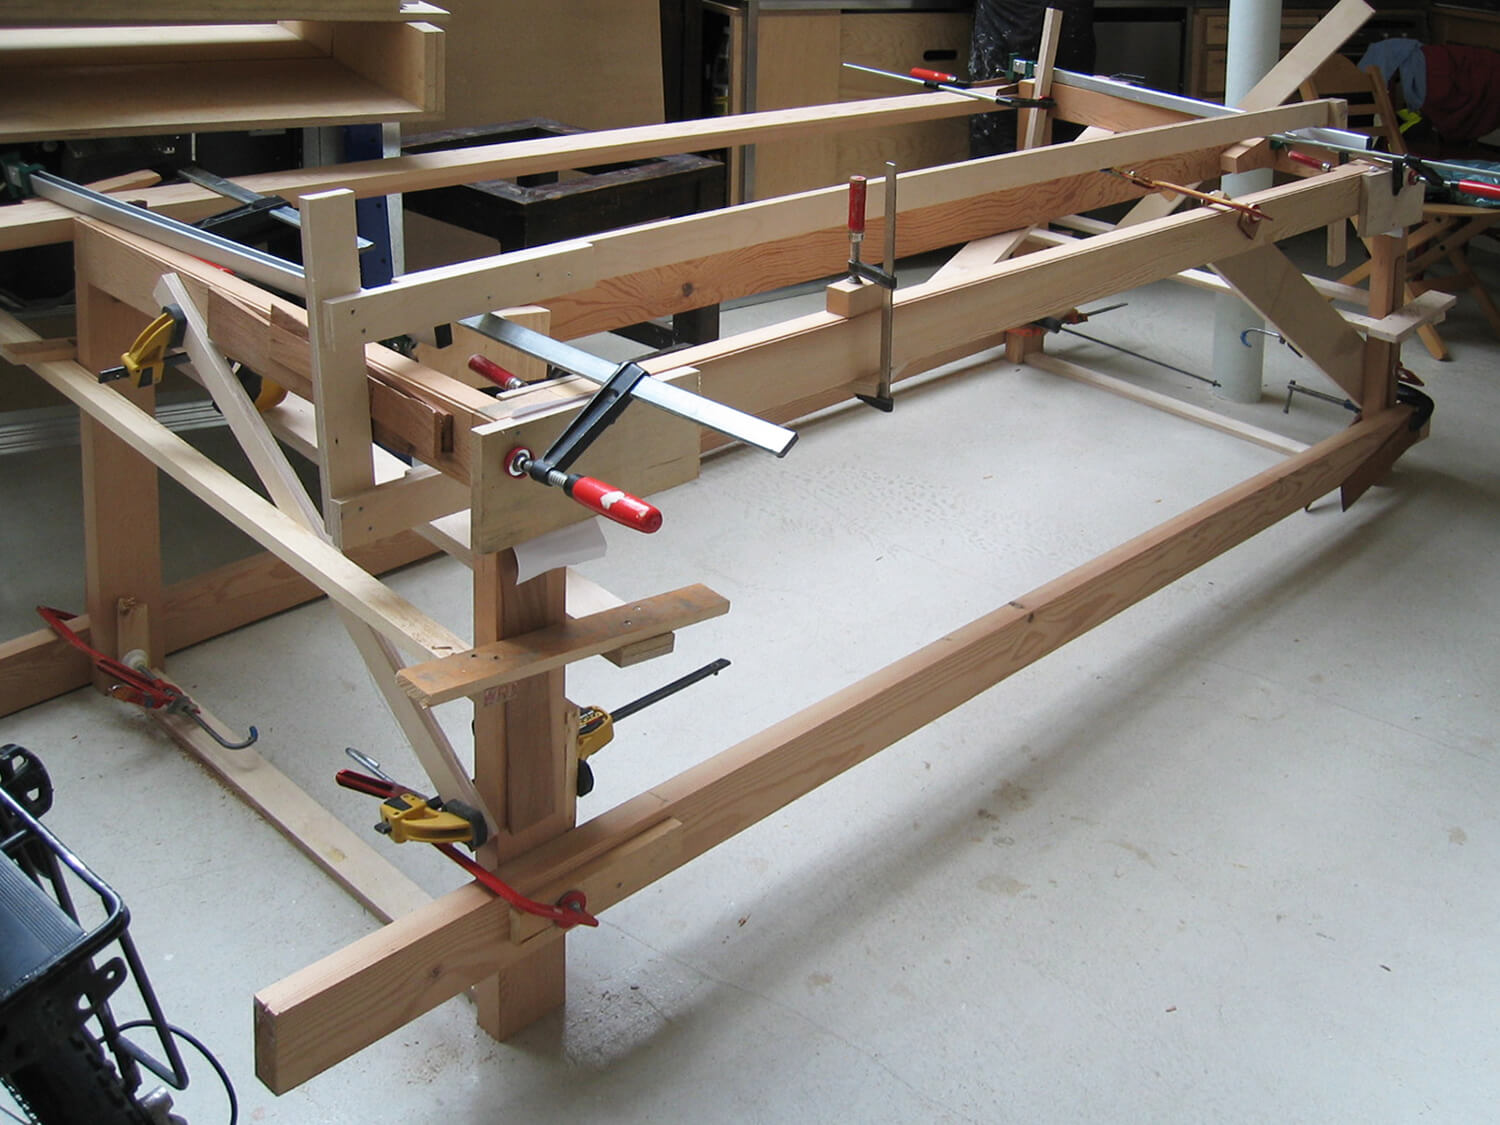 2 Table-Dining-Kitchen-Bizley-Somerset-Architect-Newington-Green-clamps.jpg